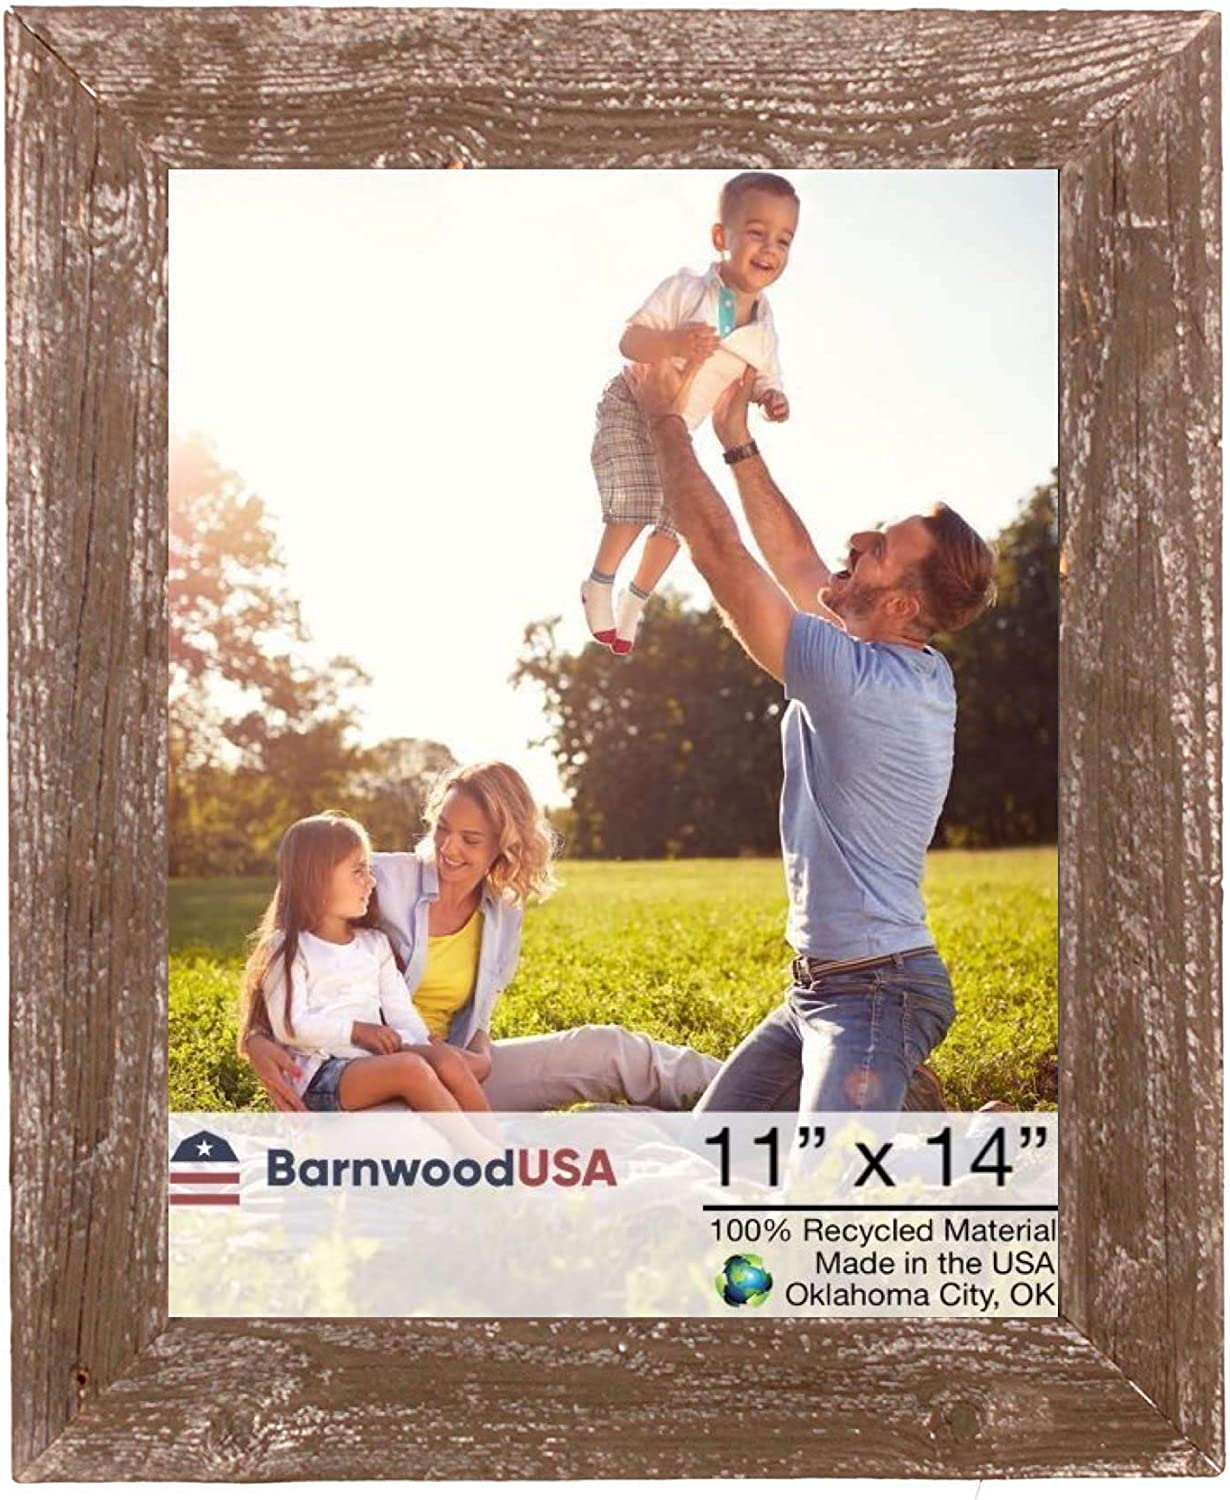 BarnwoodUSA Farmhouse Picture Frame 1 Branded goods - Super sale period limited Molding inch 2